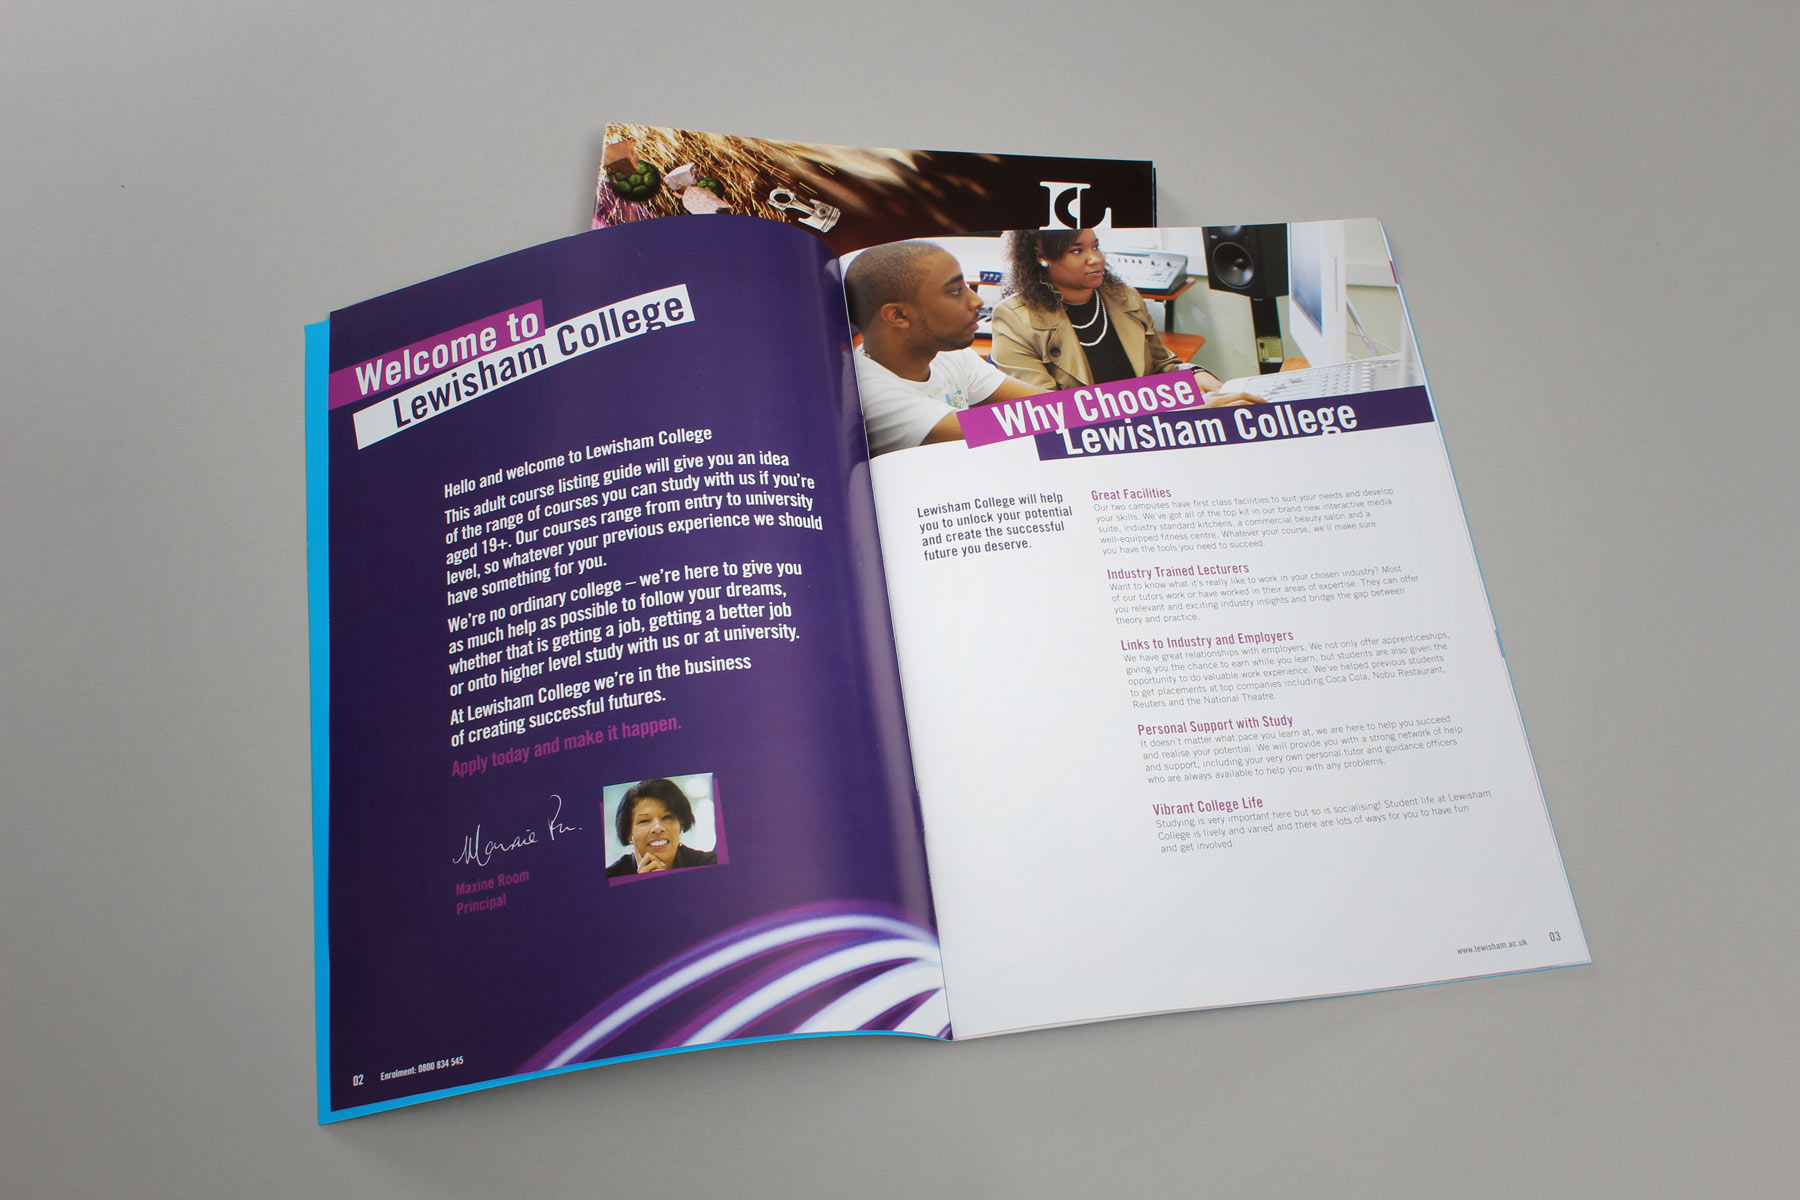 As most of the course publications are over 100 pages, we ensure a dynamic read by providing a number of varied page layouts.